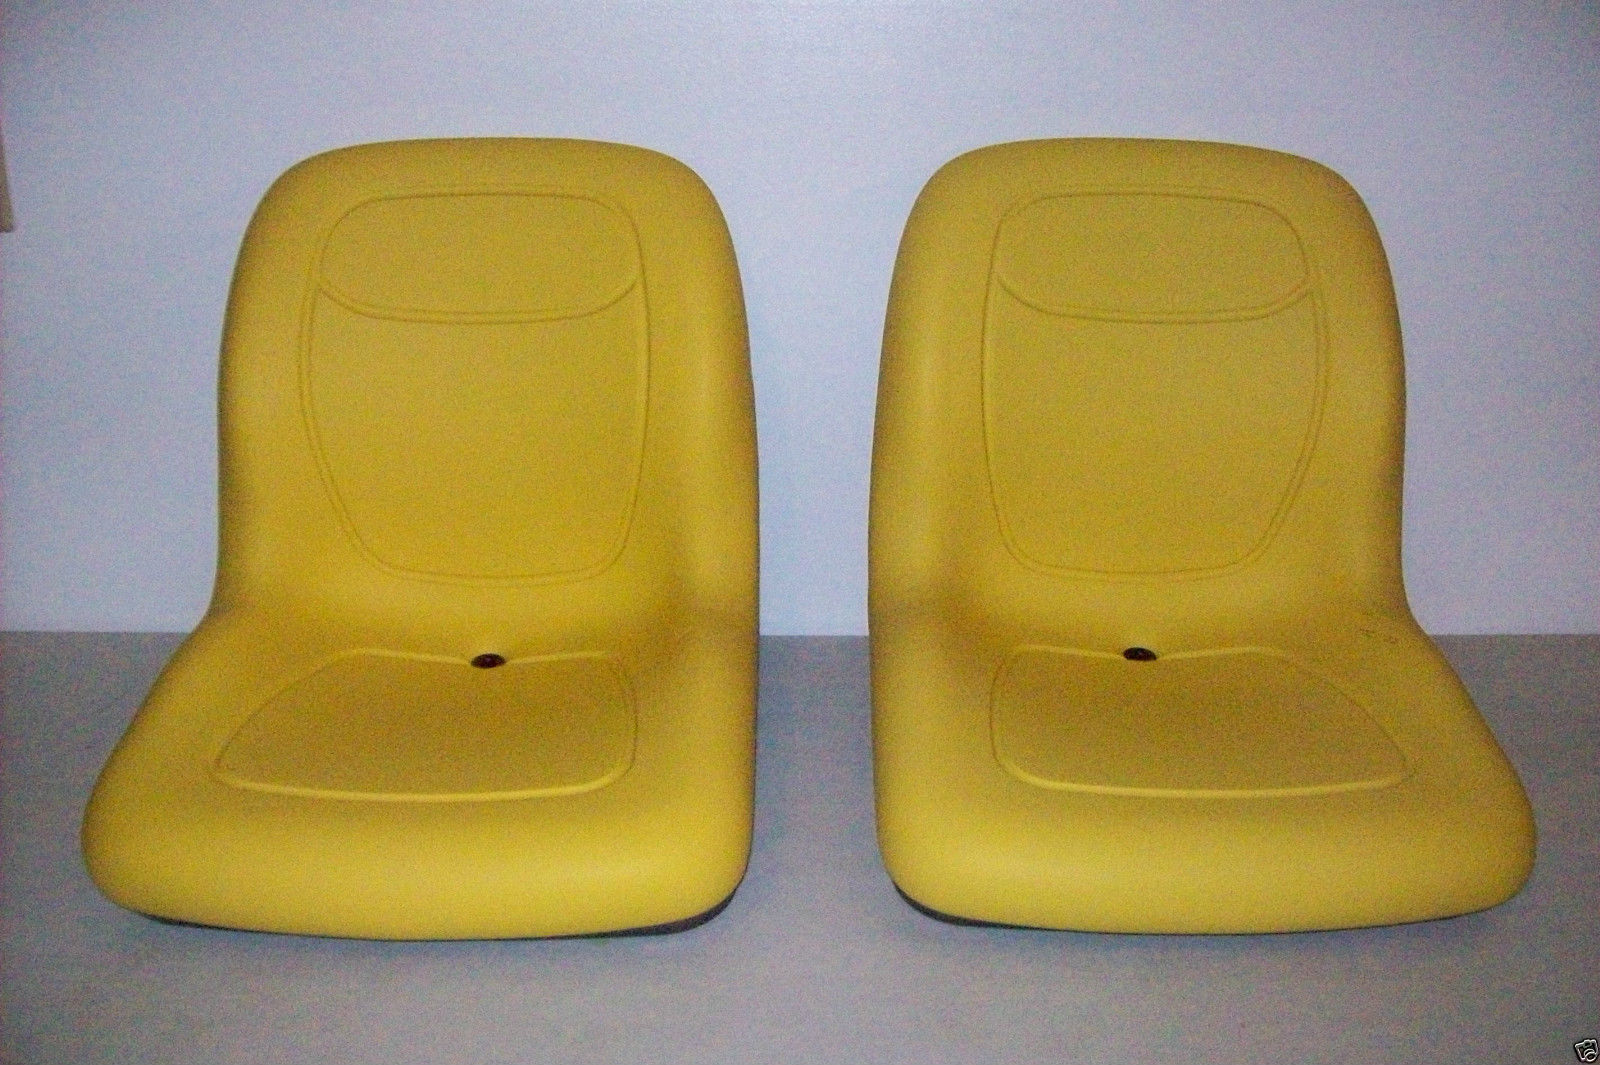 hight resolution of pair of high back seats john deere gators hpx 4x4 4x2 6x4 xuv 850d tx th jr